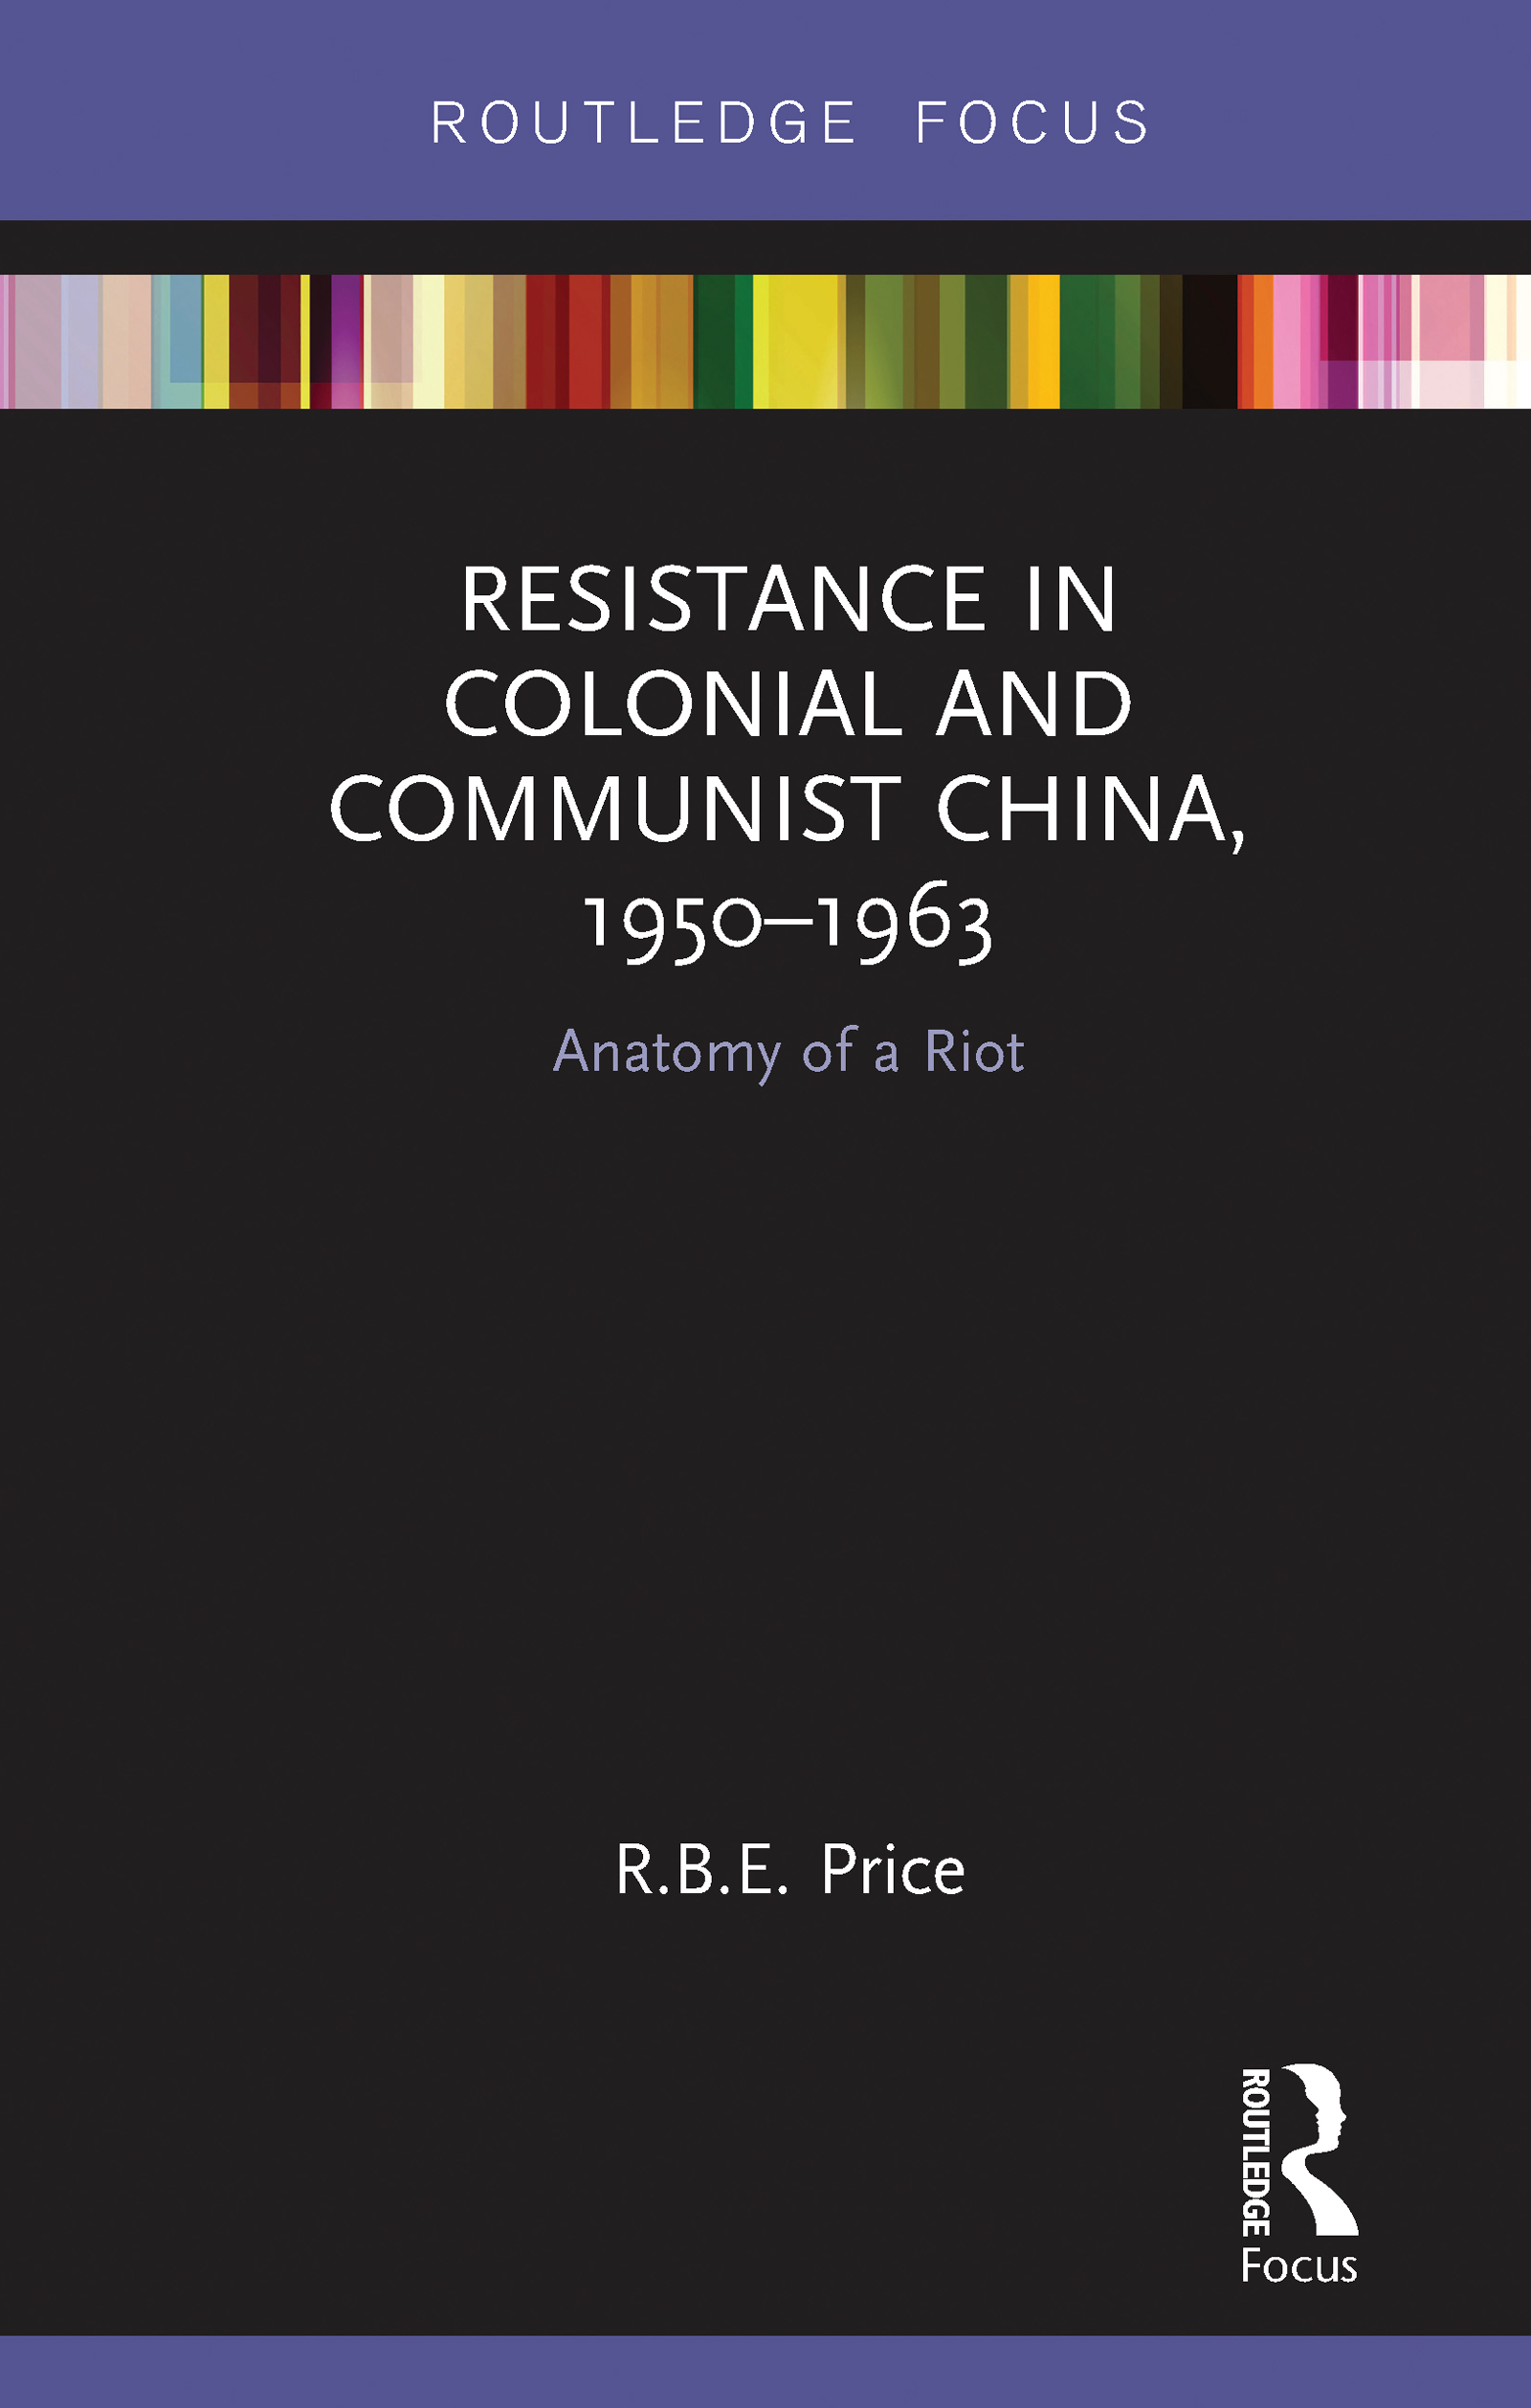 Resistance in Colonial and Communist China, 1950-1963